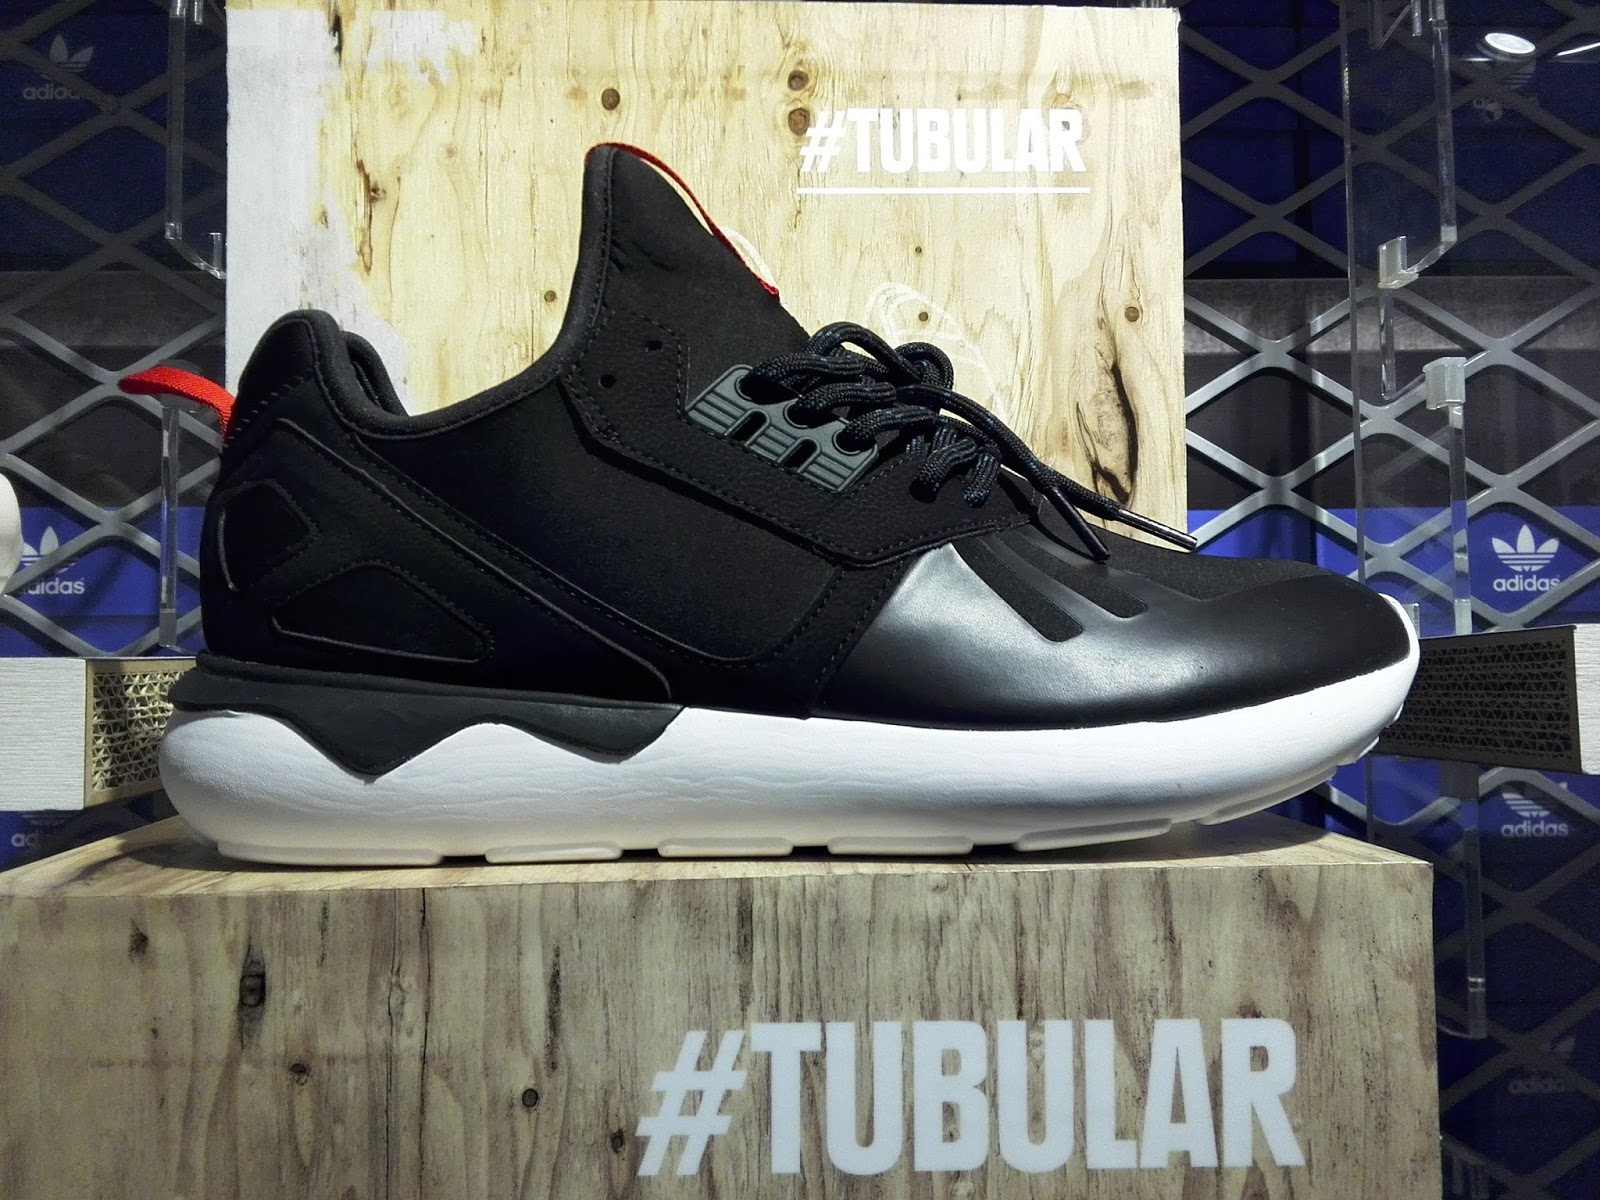 ... you can now grab them at Adidas Trinoma for Php 5,895. Keep tabs here  at Analykix.com, as Adidas still has more surprise on their sleeve.